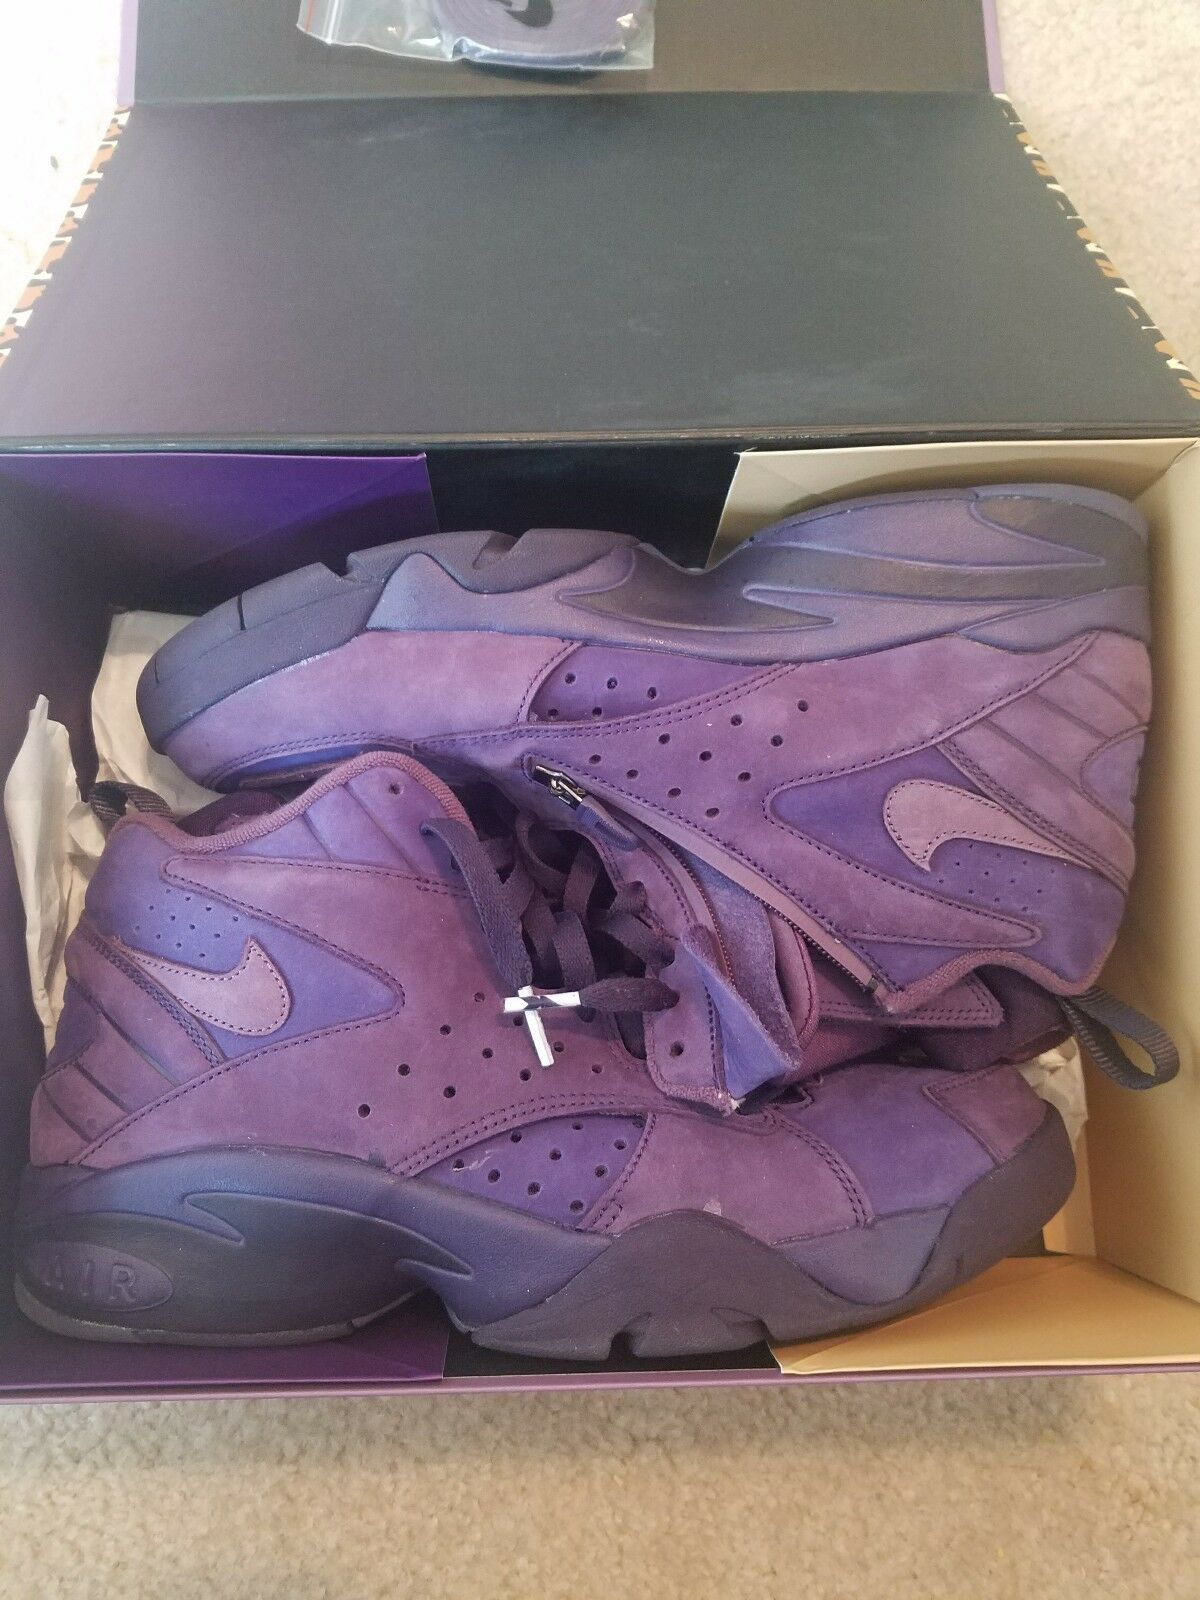 b1af3b1164 KITH x Nike Air Purple Maestro 2 High Retro Scottie Pippen NKAH1069-500  Size 9.5